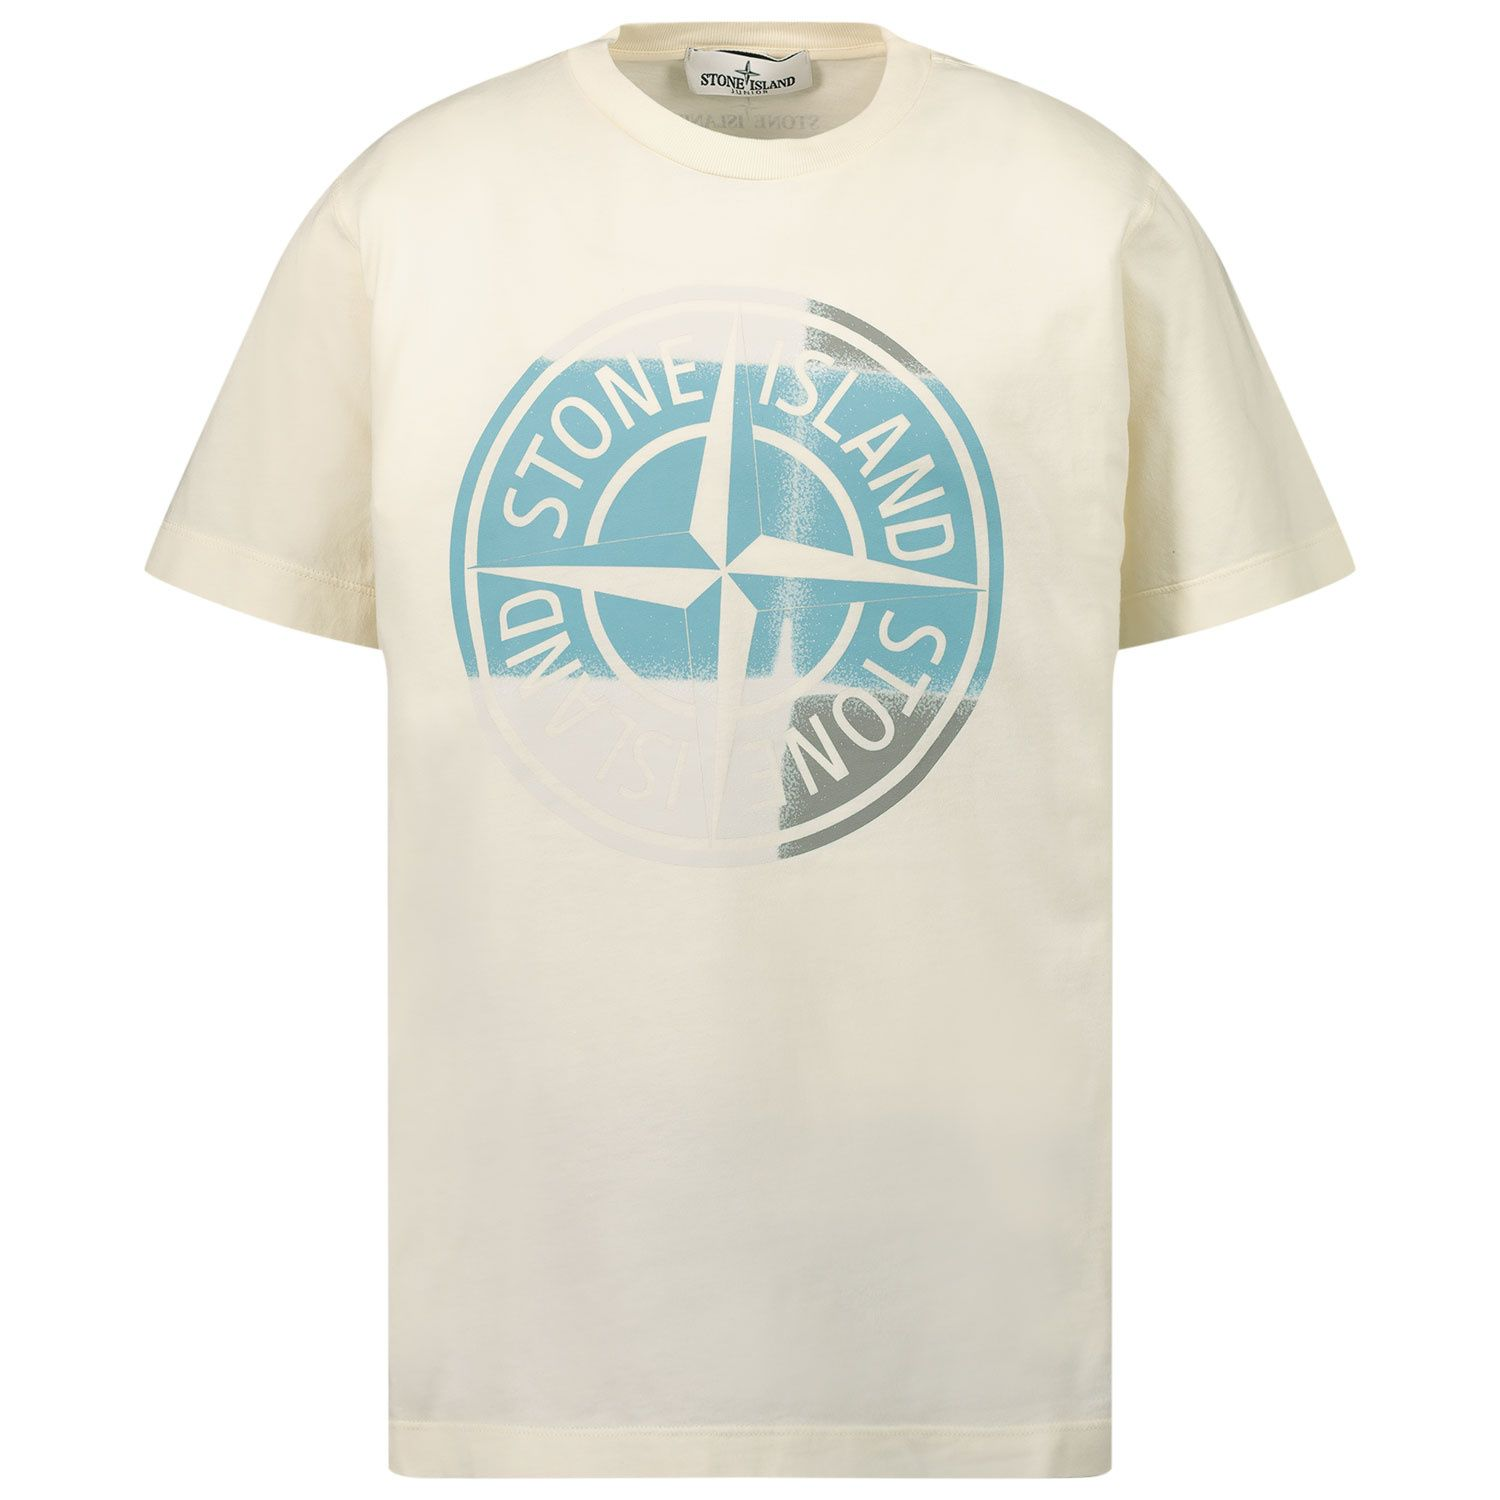 Picture of Stone Island 21052 kids t-shirt off white